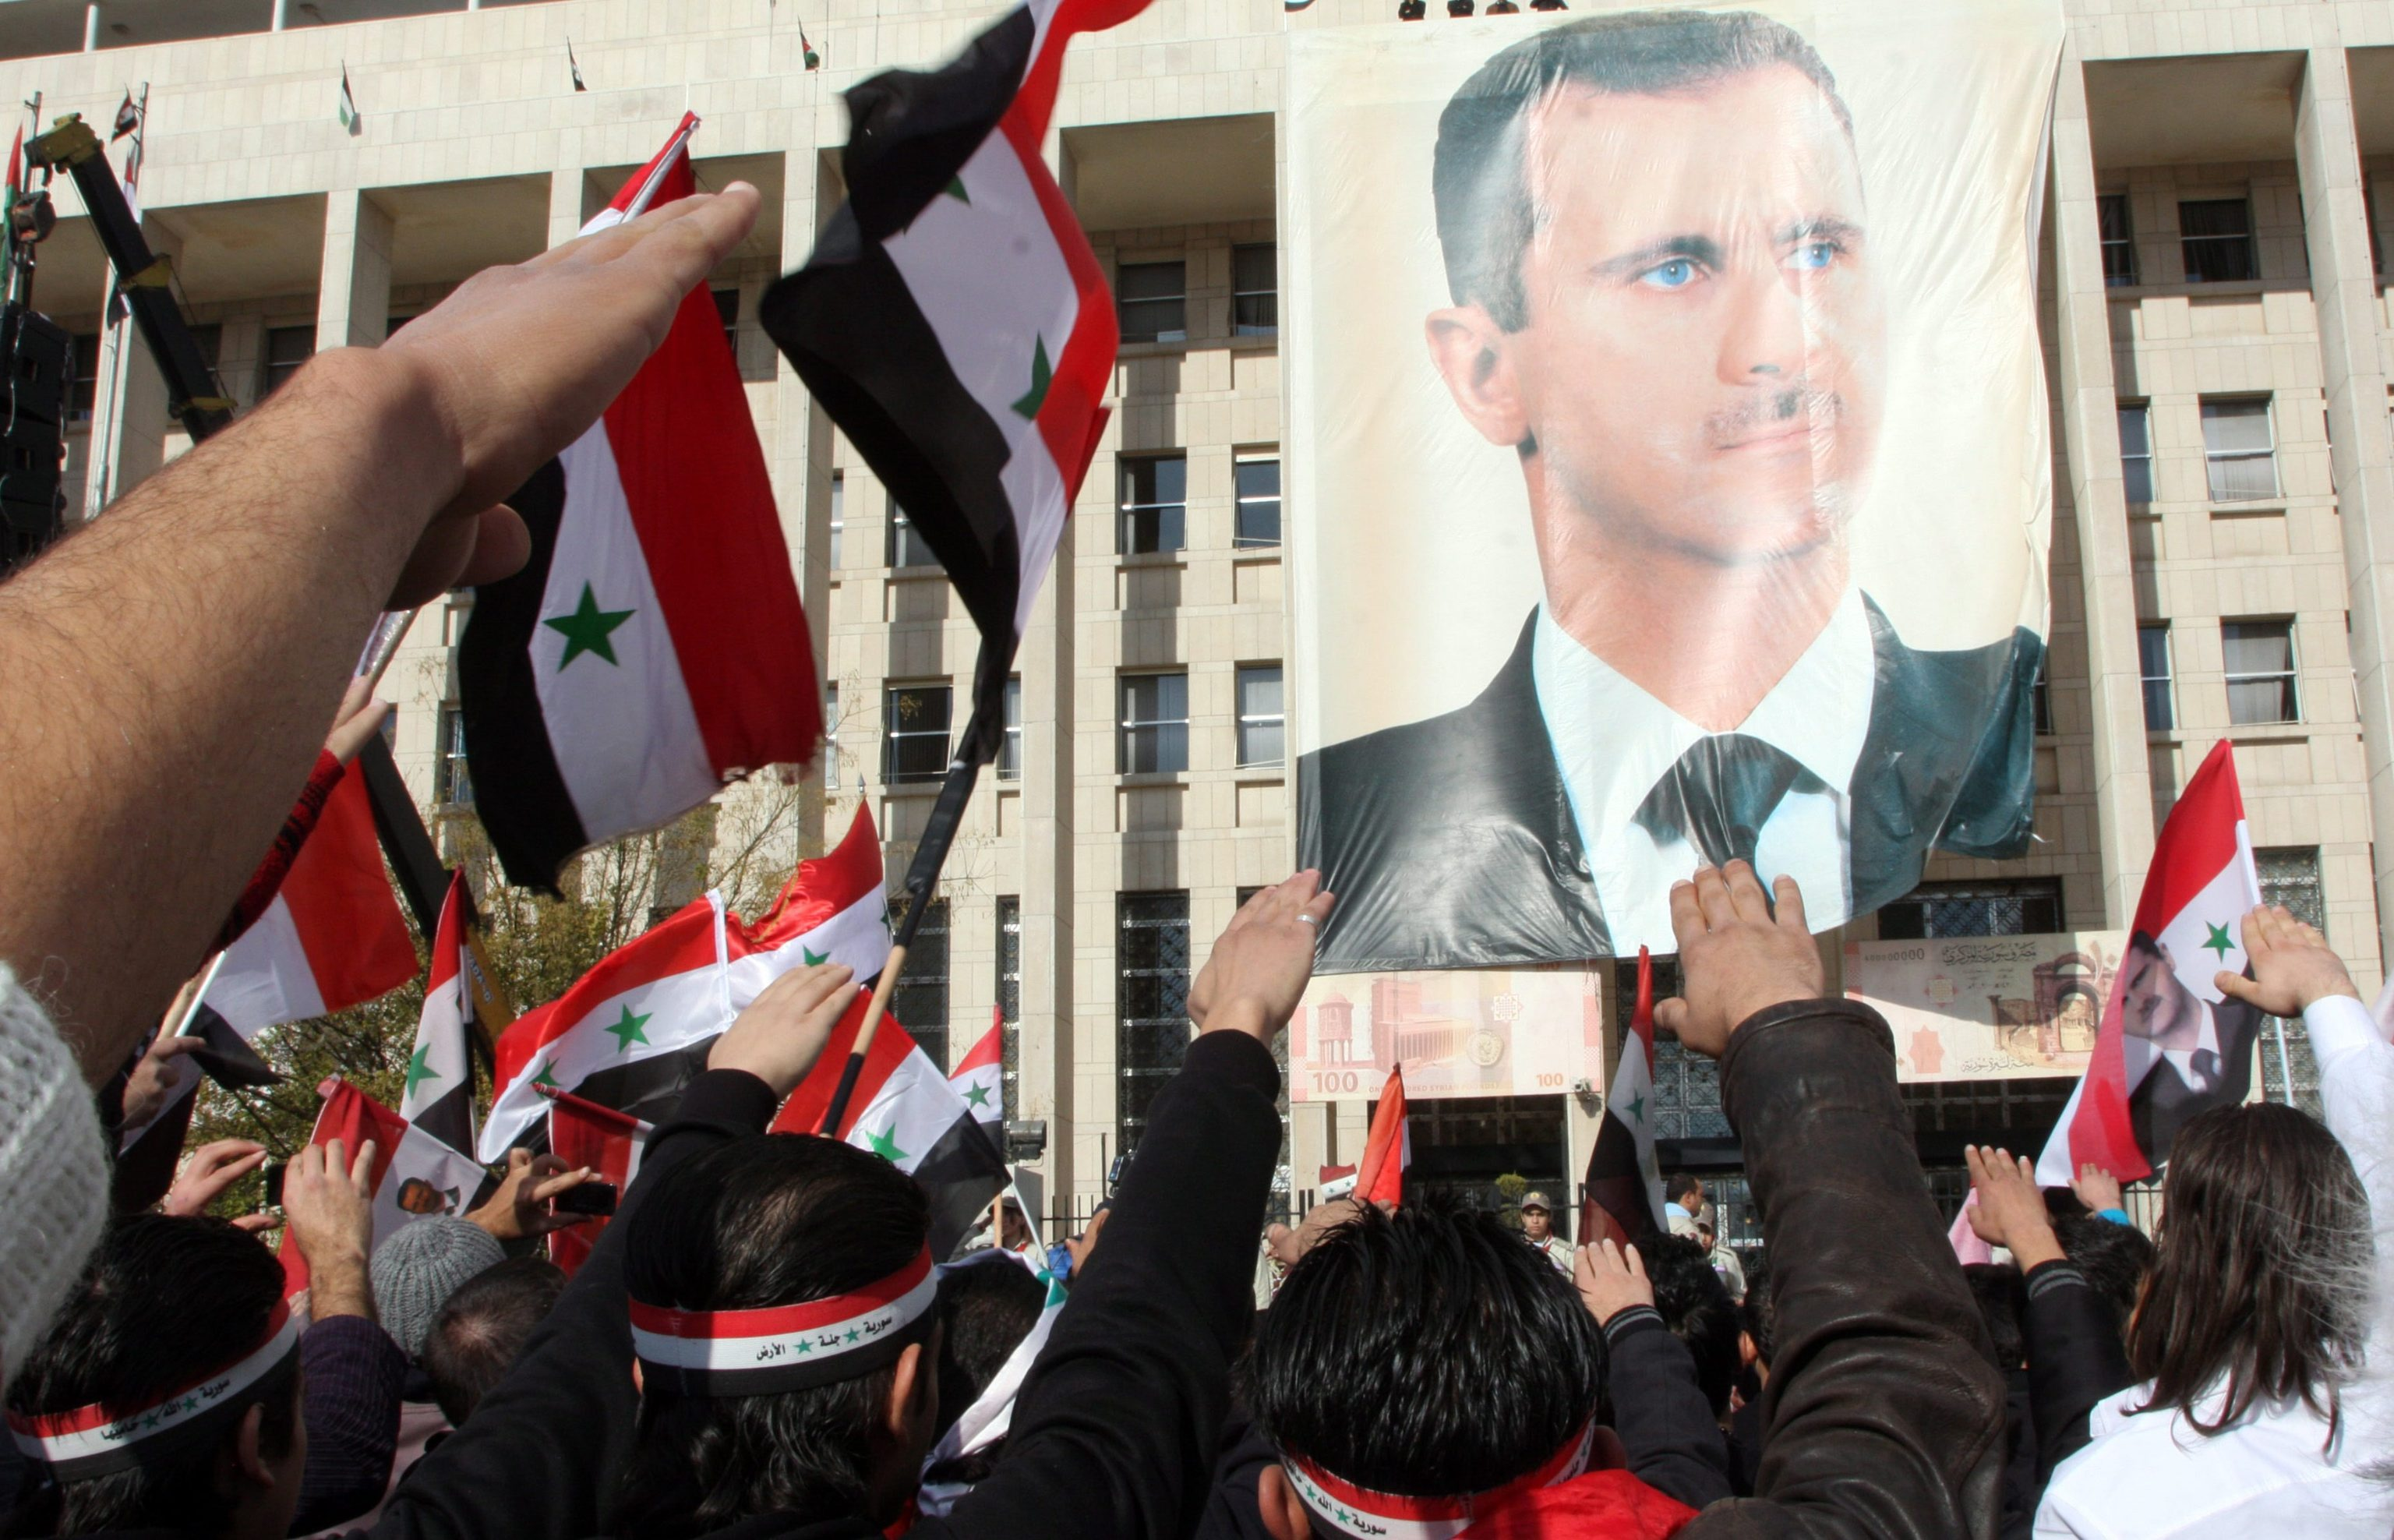 ansa - siria - epa03029257 Syrians shout pro-government slogans and wave national flags next to a poster of President Bashar Assad during a rally at Sabe Bahrat square in downtown Damascus, Syria, 09 December 2011. Thousands rallied in Damascus to show their support to President Bashar Assad after he denied in an interview on 07 December that he had ordered his troops to kill or attack civilians protesting against his rule and insisted he did not feel guilty for the bloodshed. In the meantime, opposition said on 09 December that at least six people were killed by Syrian security forces in the restive province of Homs. EPA/YOUSSEF BADAWI